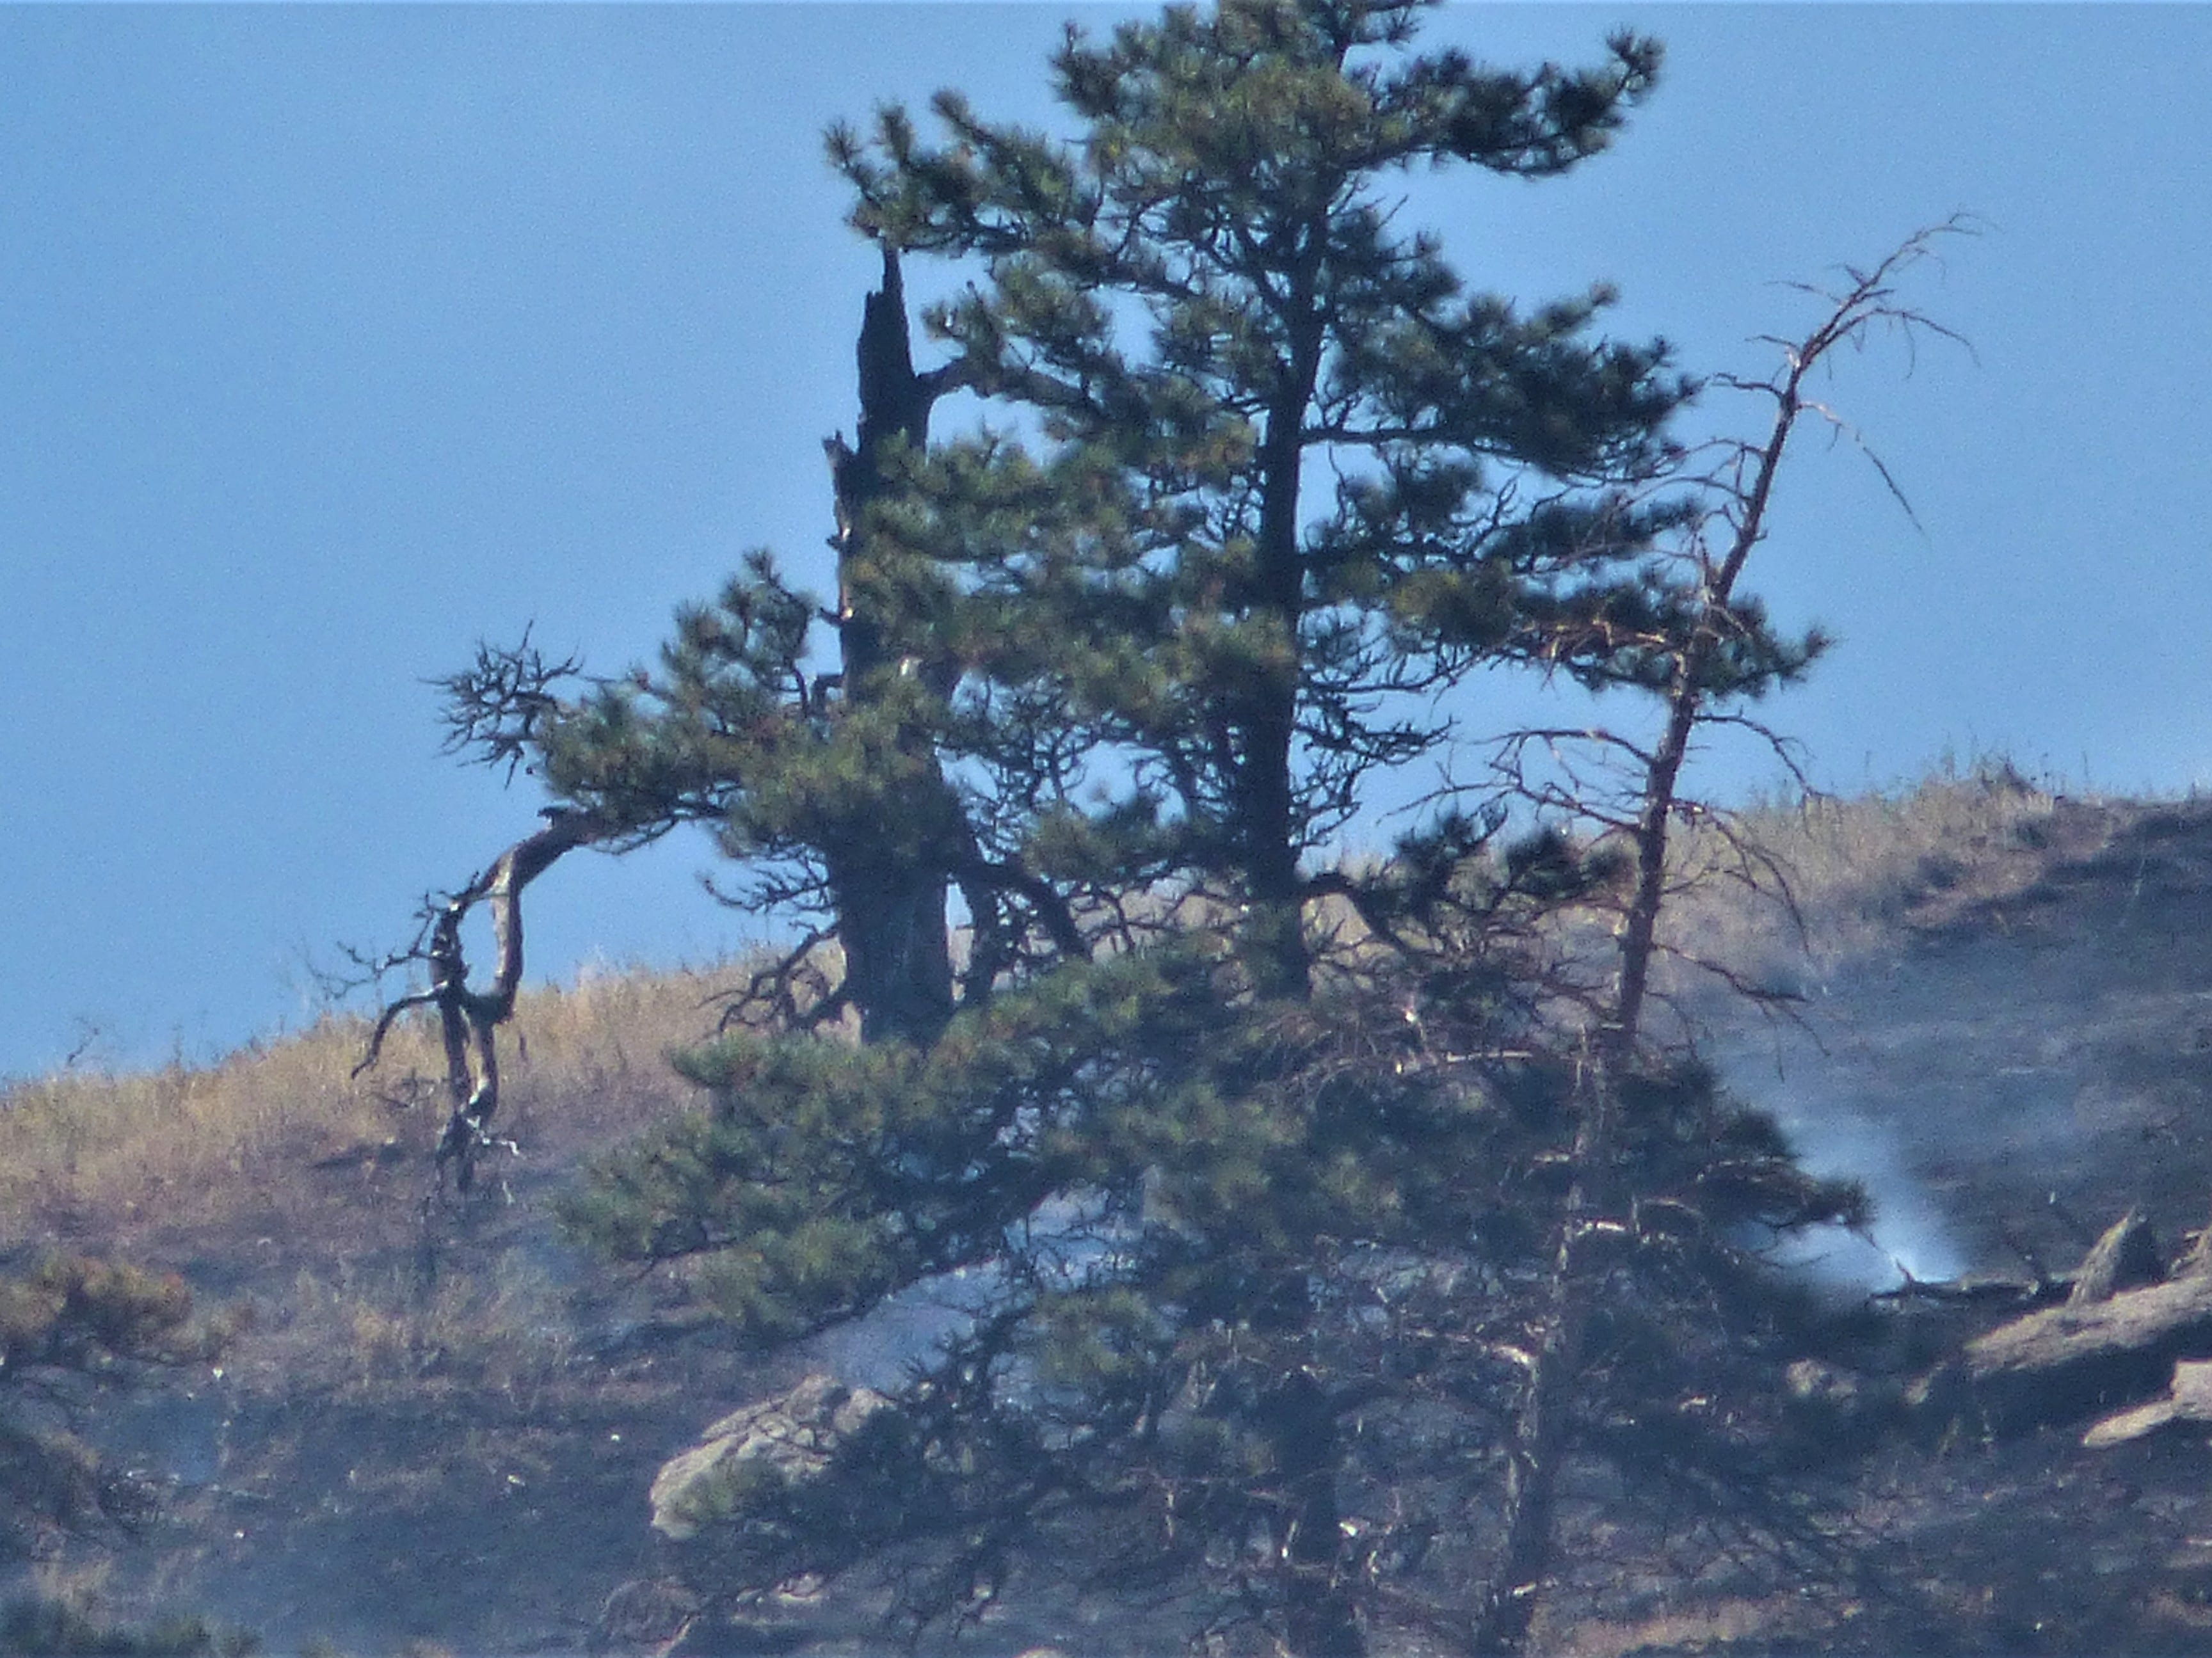 A firefighter digs while working the Seaman Fire.